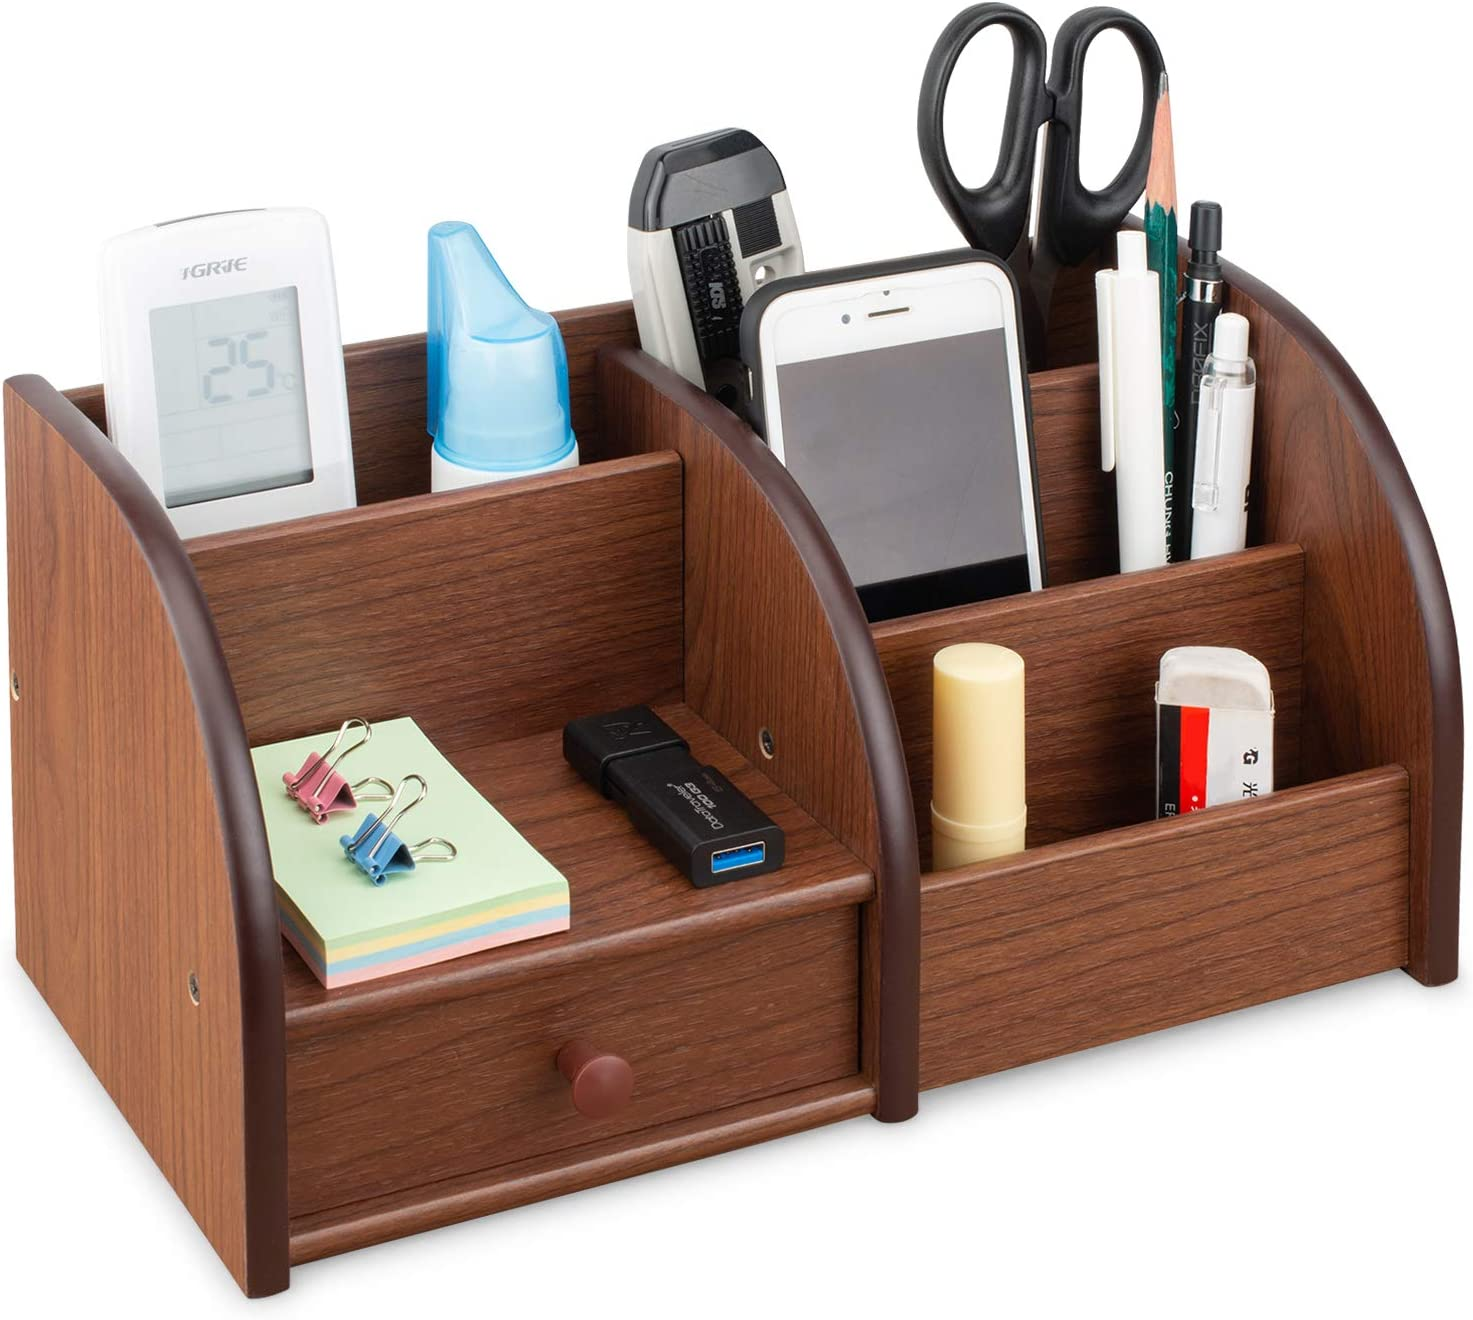 Tonsmile Wooden Office Stationery Desk Tidy Storage Organiser Holder for Pens, Pencils, Mobile Phones, and Remote Controls